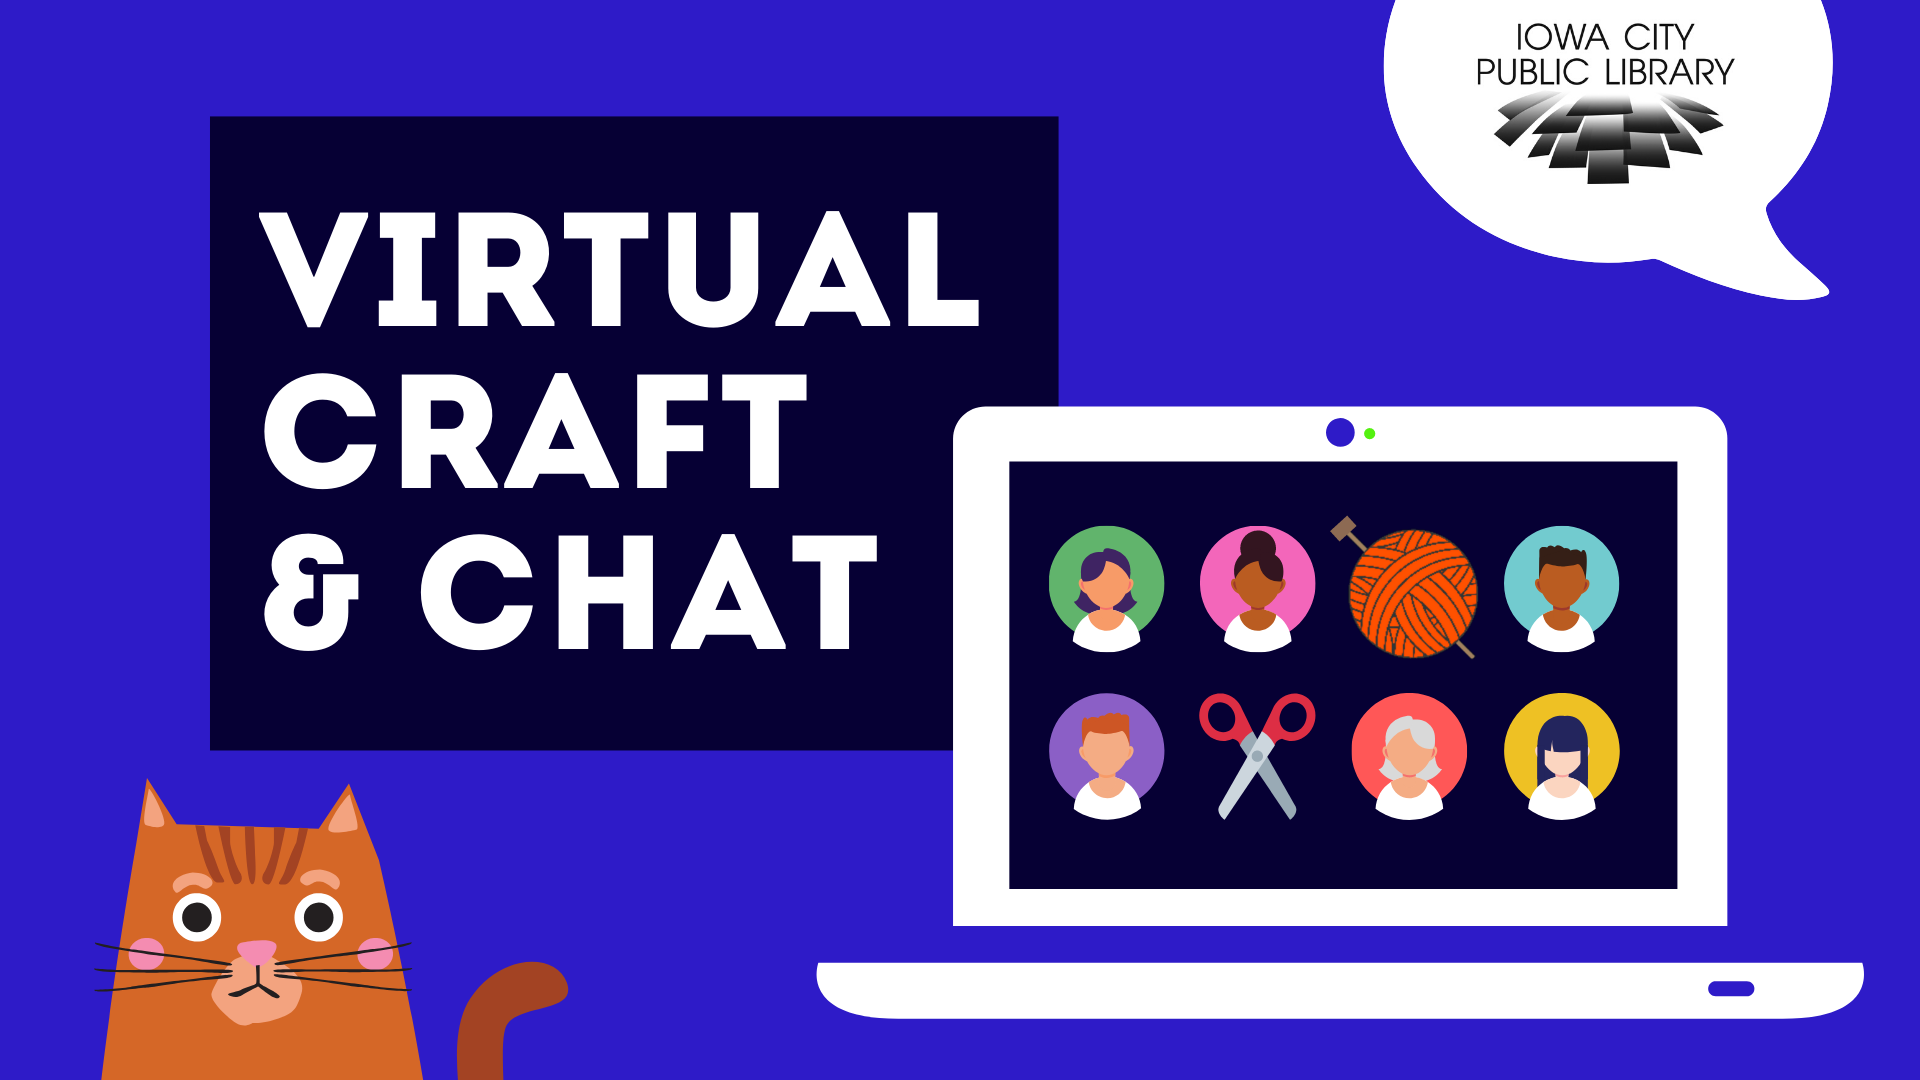 Virtual Craft & Chat